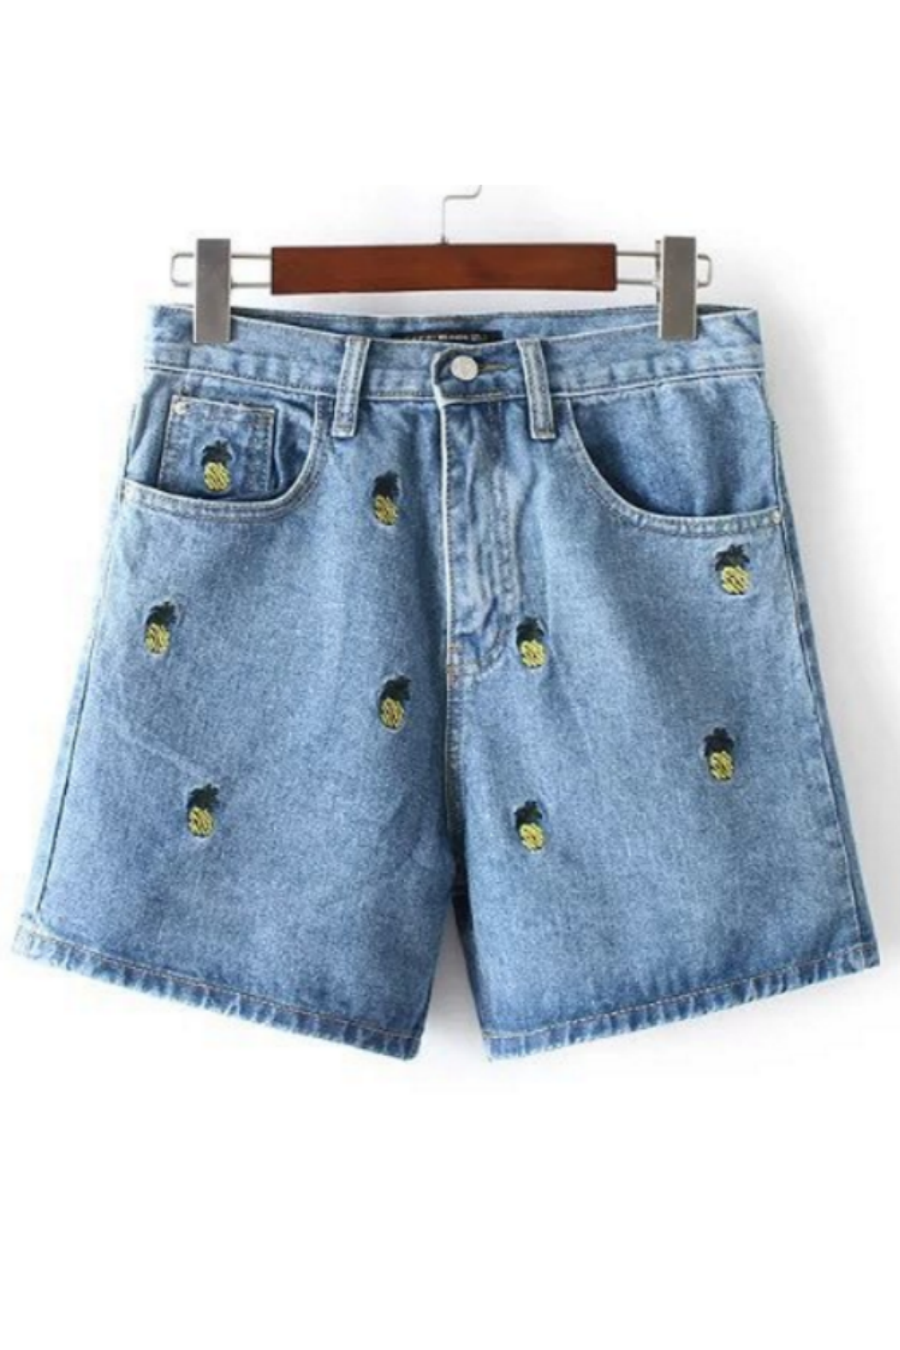 Pineapple Embroidery Shorts